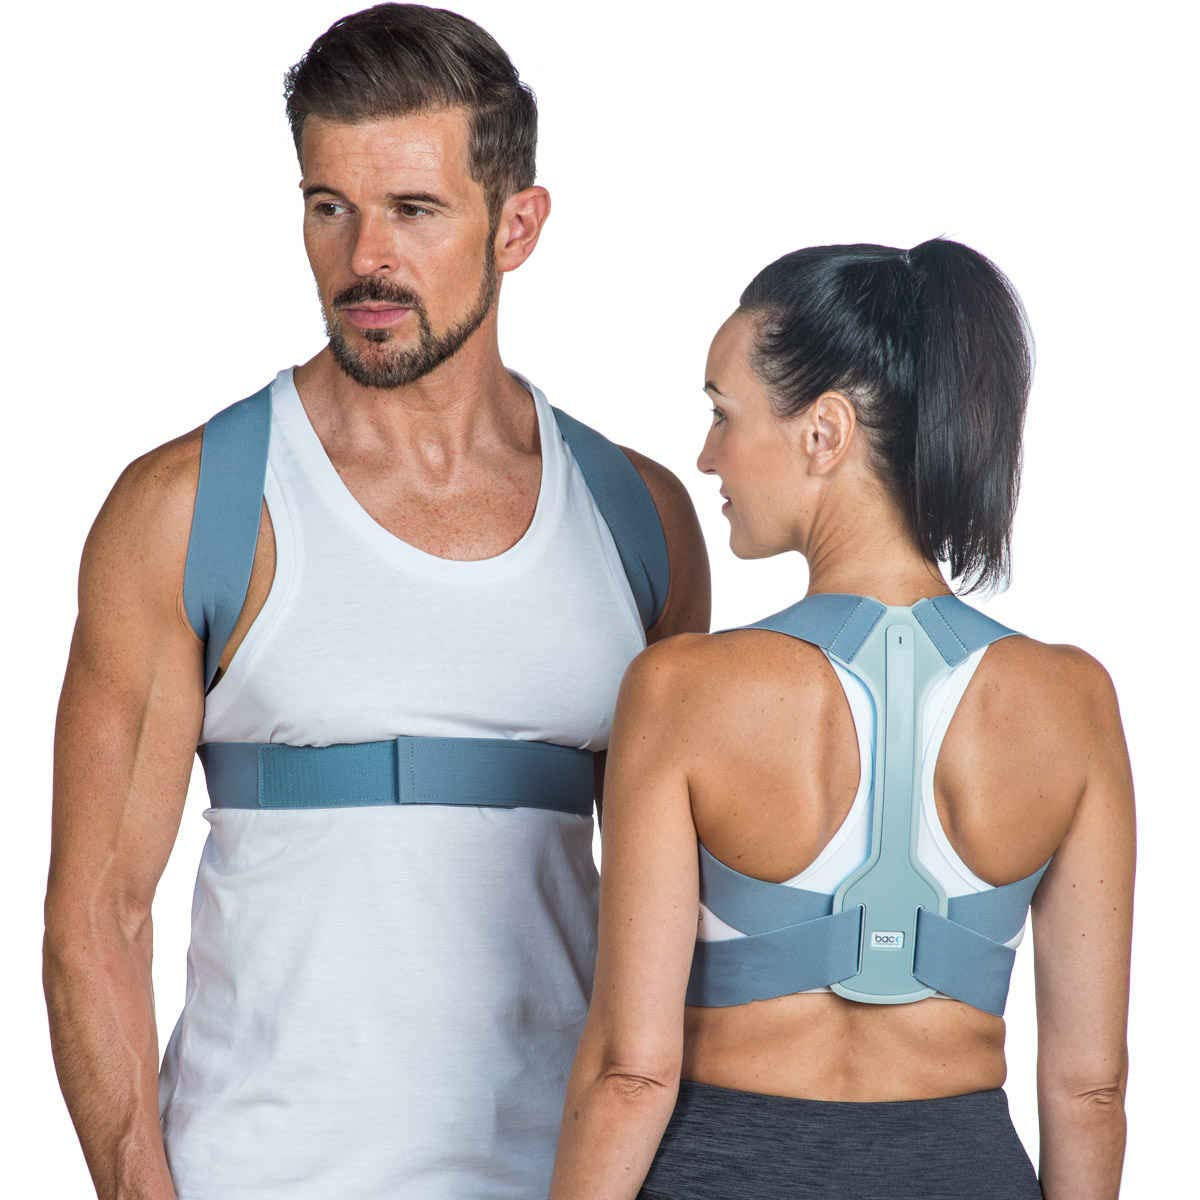 Back Posture Corrector for Women & Men-London Spine Clinic and FDA Approved | Adjustable Posture Brace Support | Improves Posture, Prevents Slouching & Relieves Pain(Small-Med)